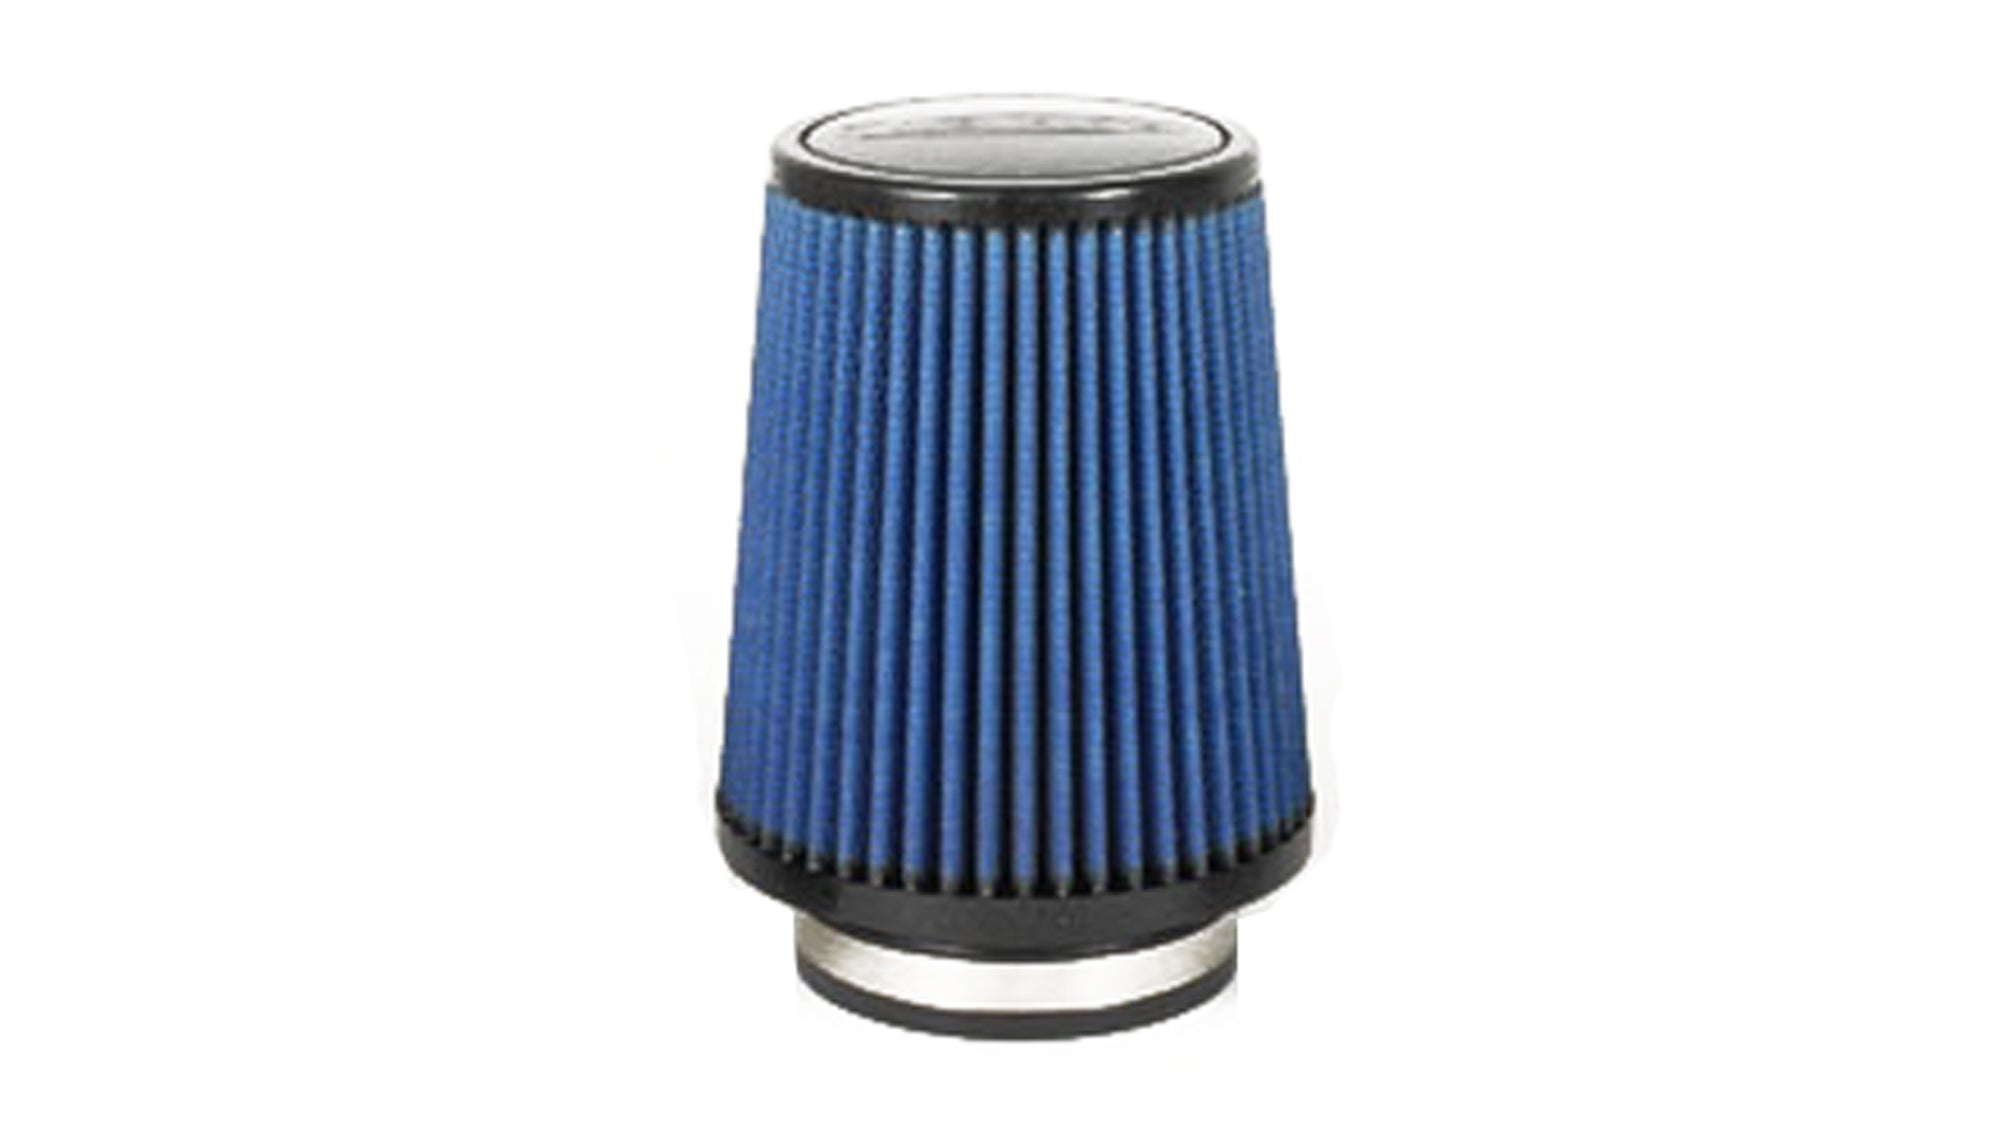 1996-1999 GMC C1500-C3500 Oiled Filter - 5111